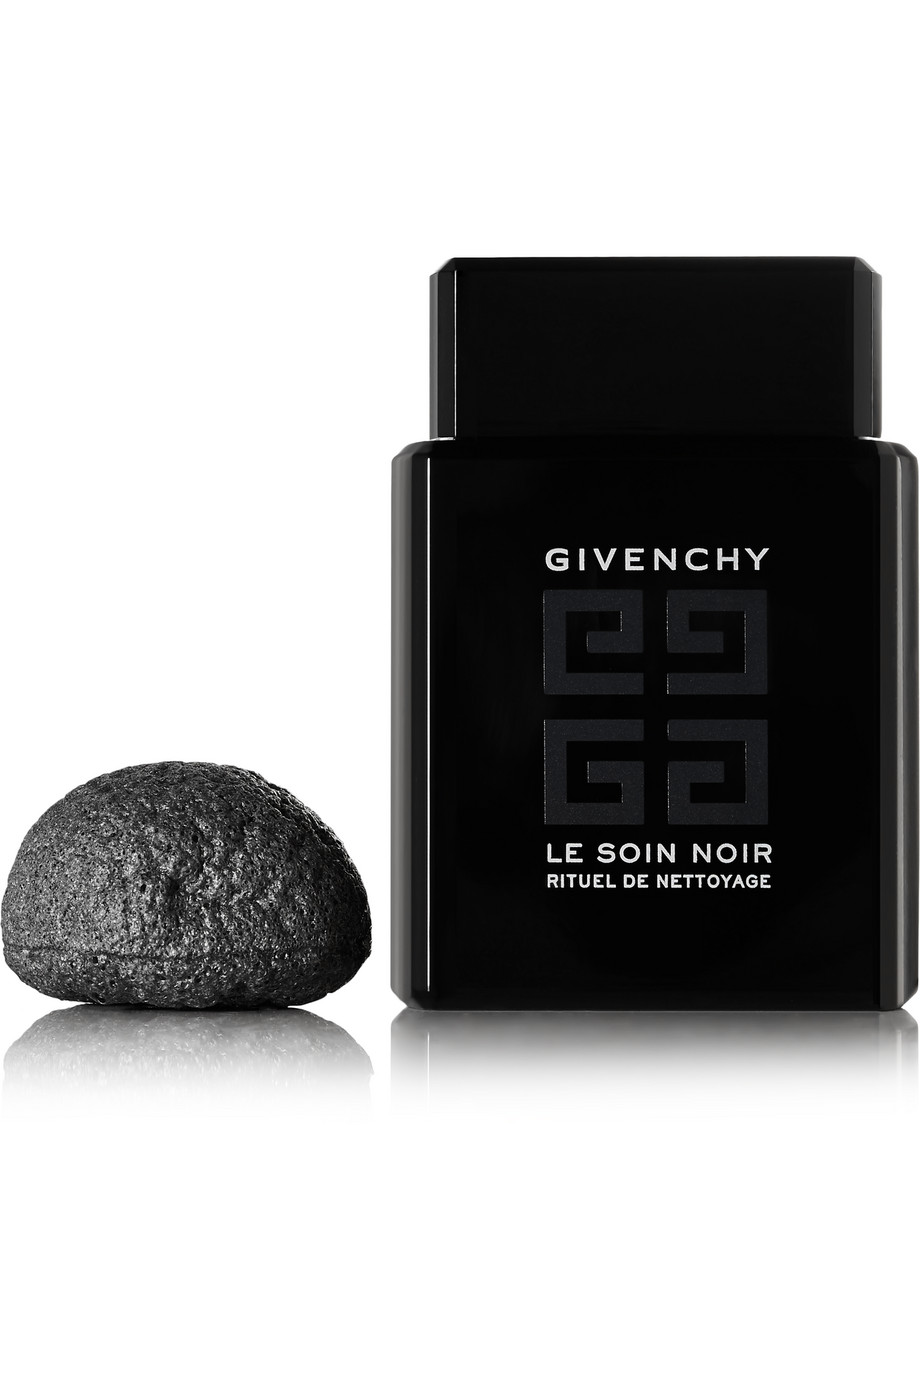 Le Soin Noir Cleanser, 175ml, by Givenchy Beauty